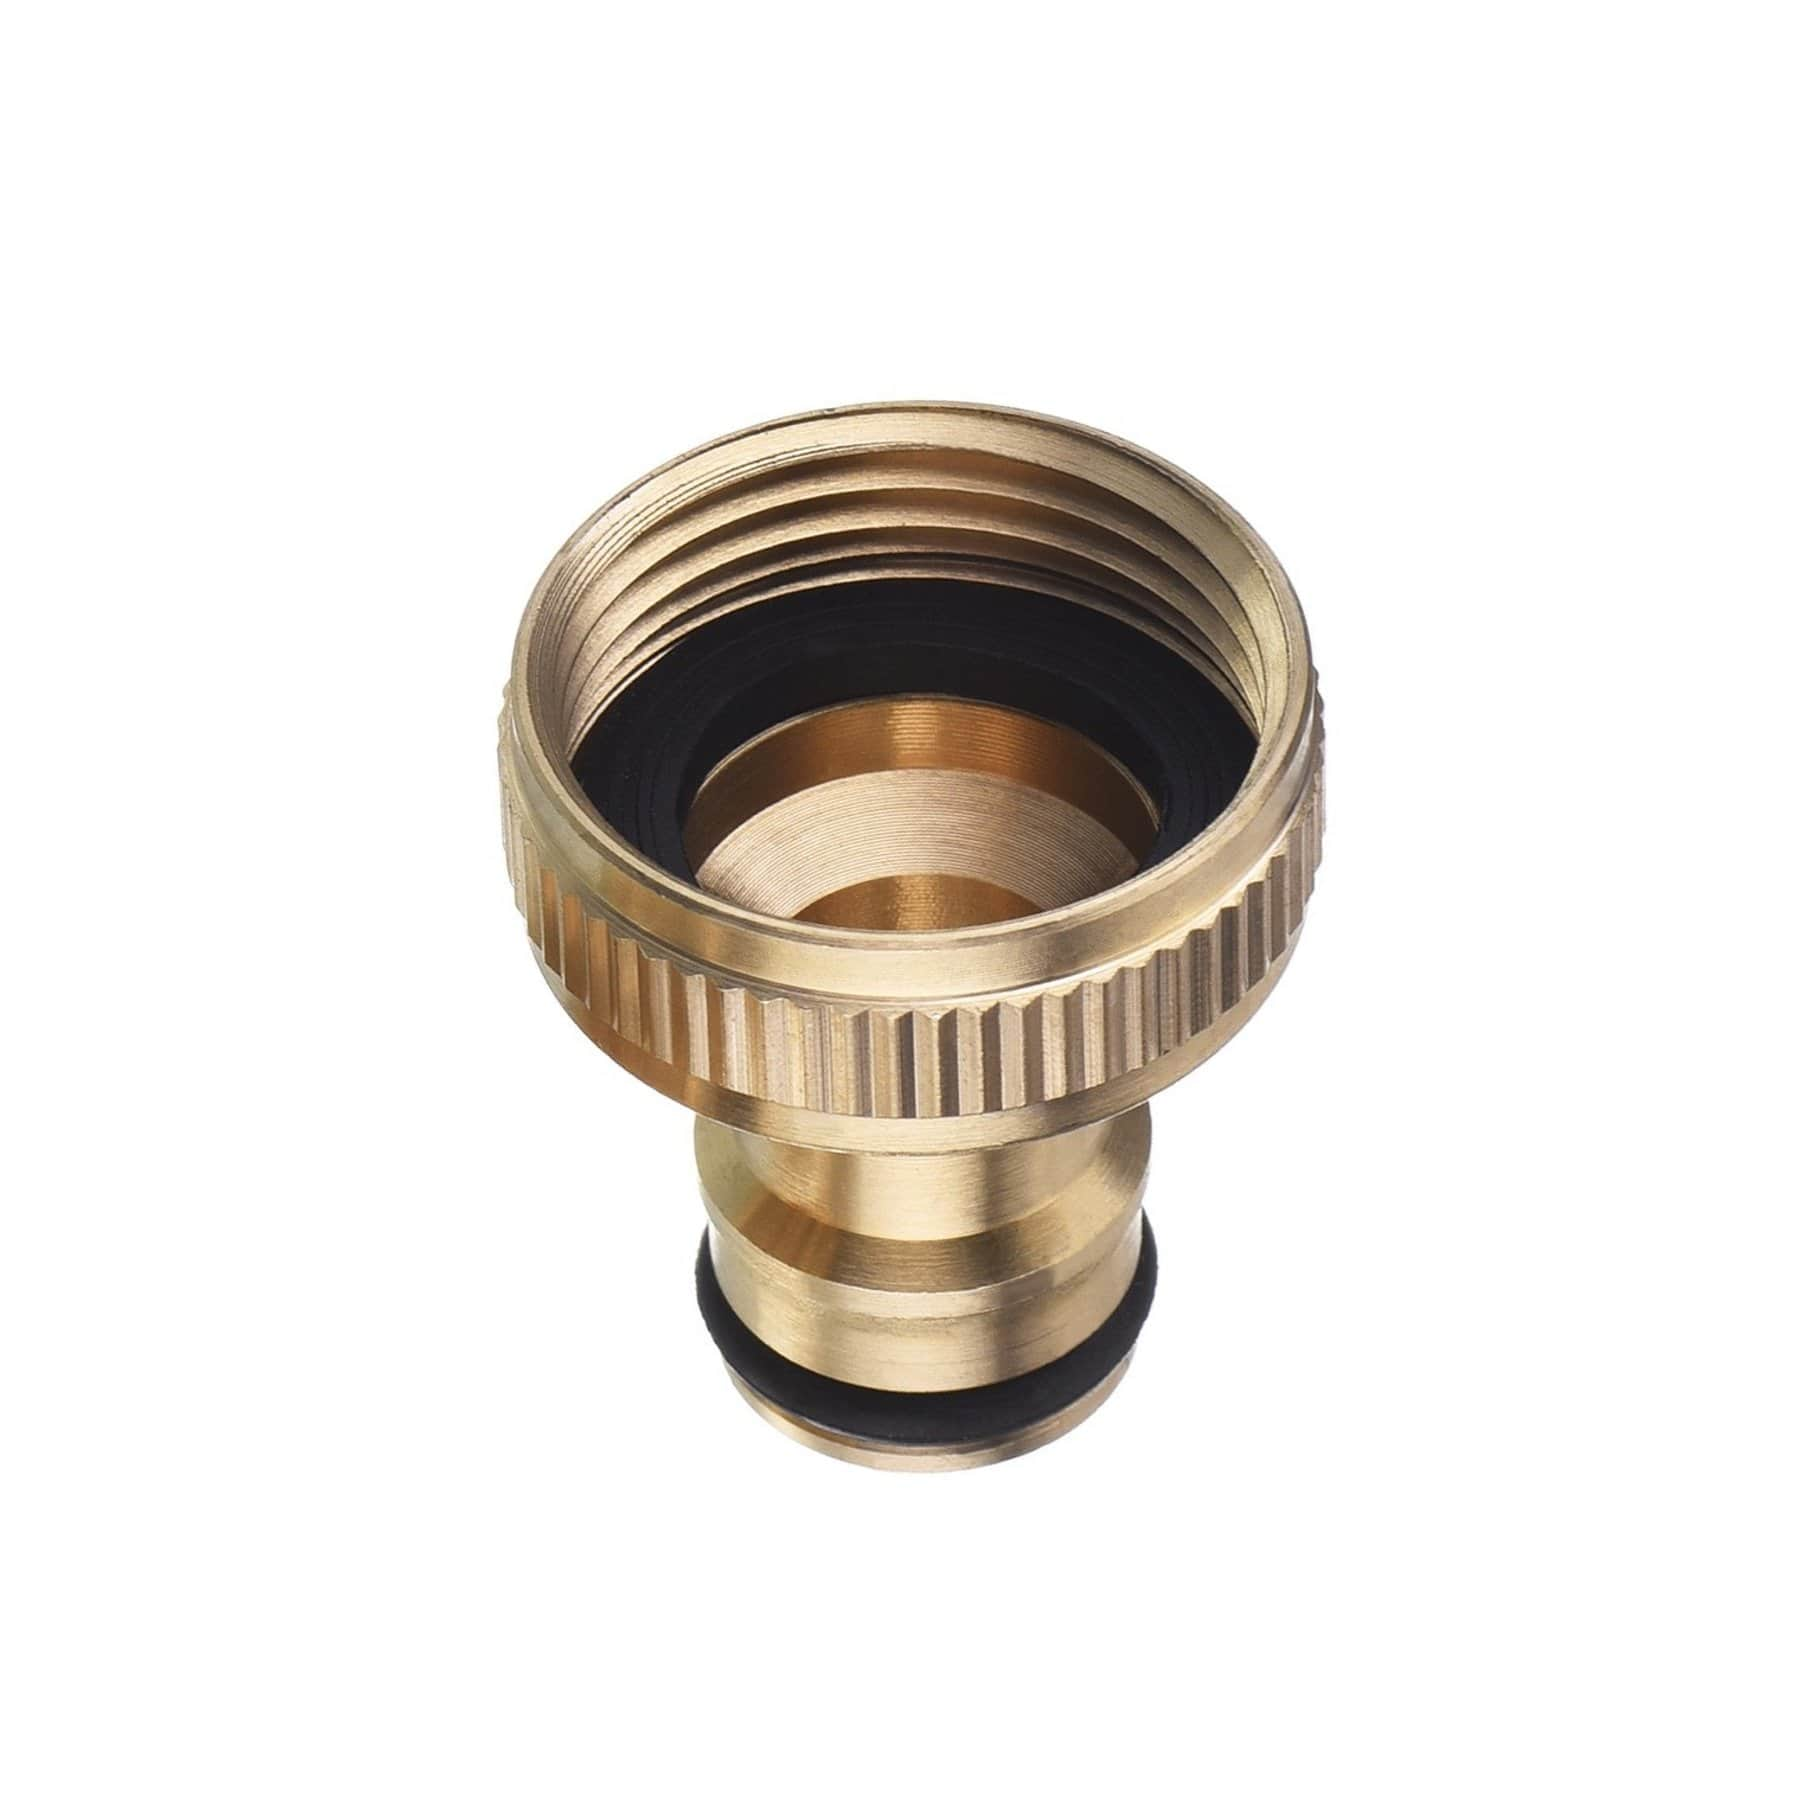 "BRASS Hozelock Male to 3/4"" Threaded TAP Connector - Window Cleaning Warehouse Ltd"